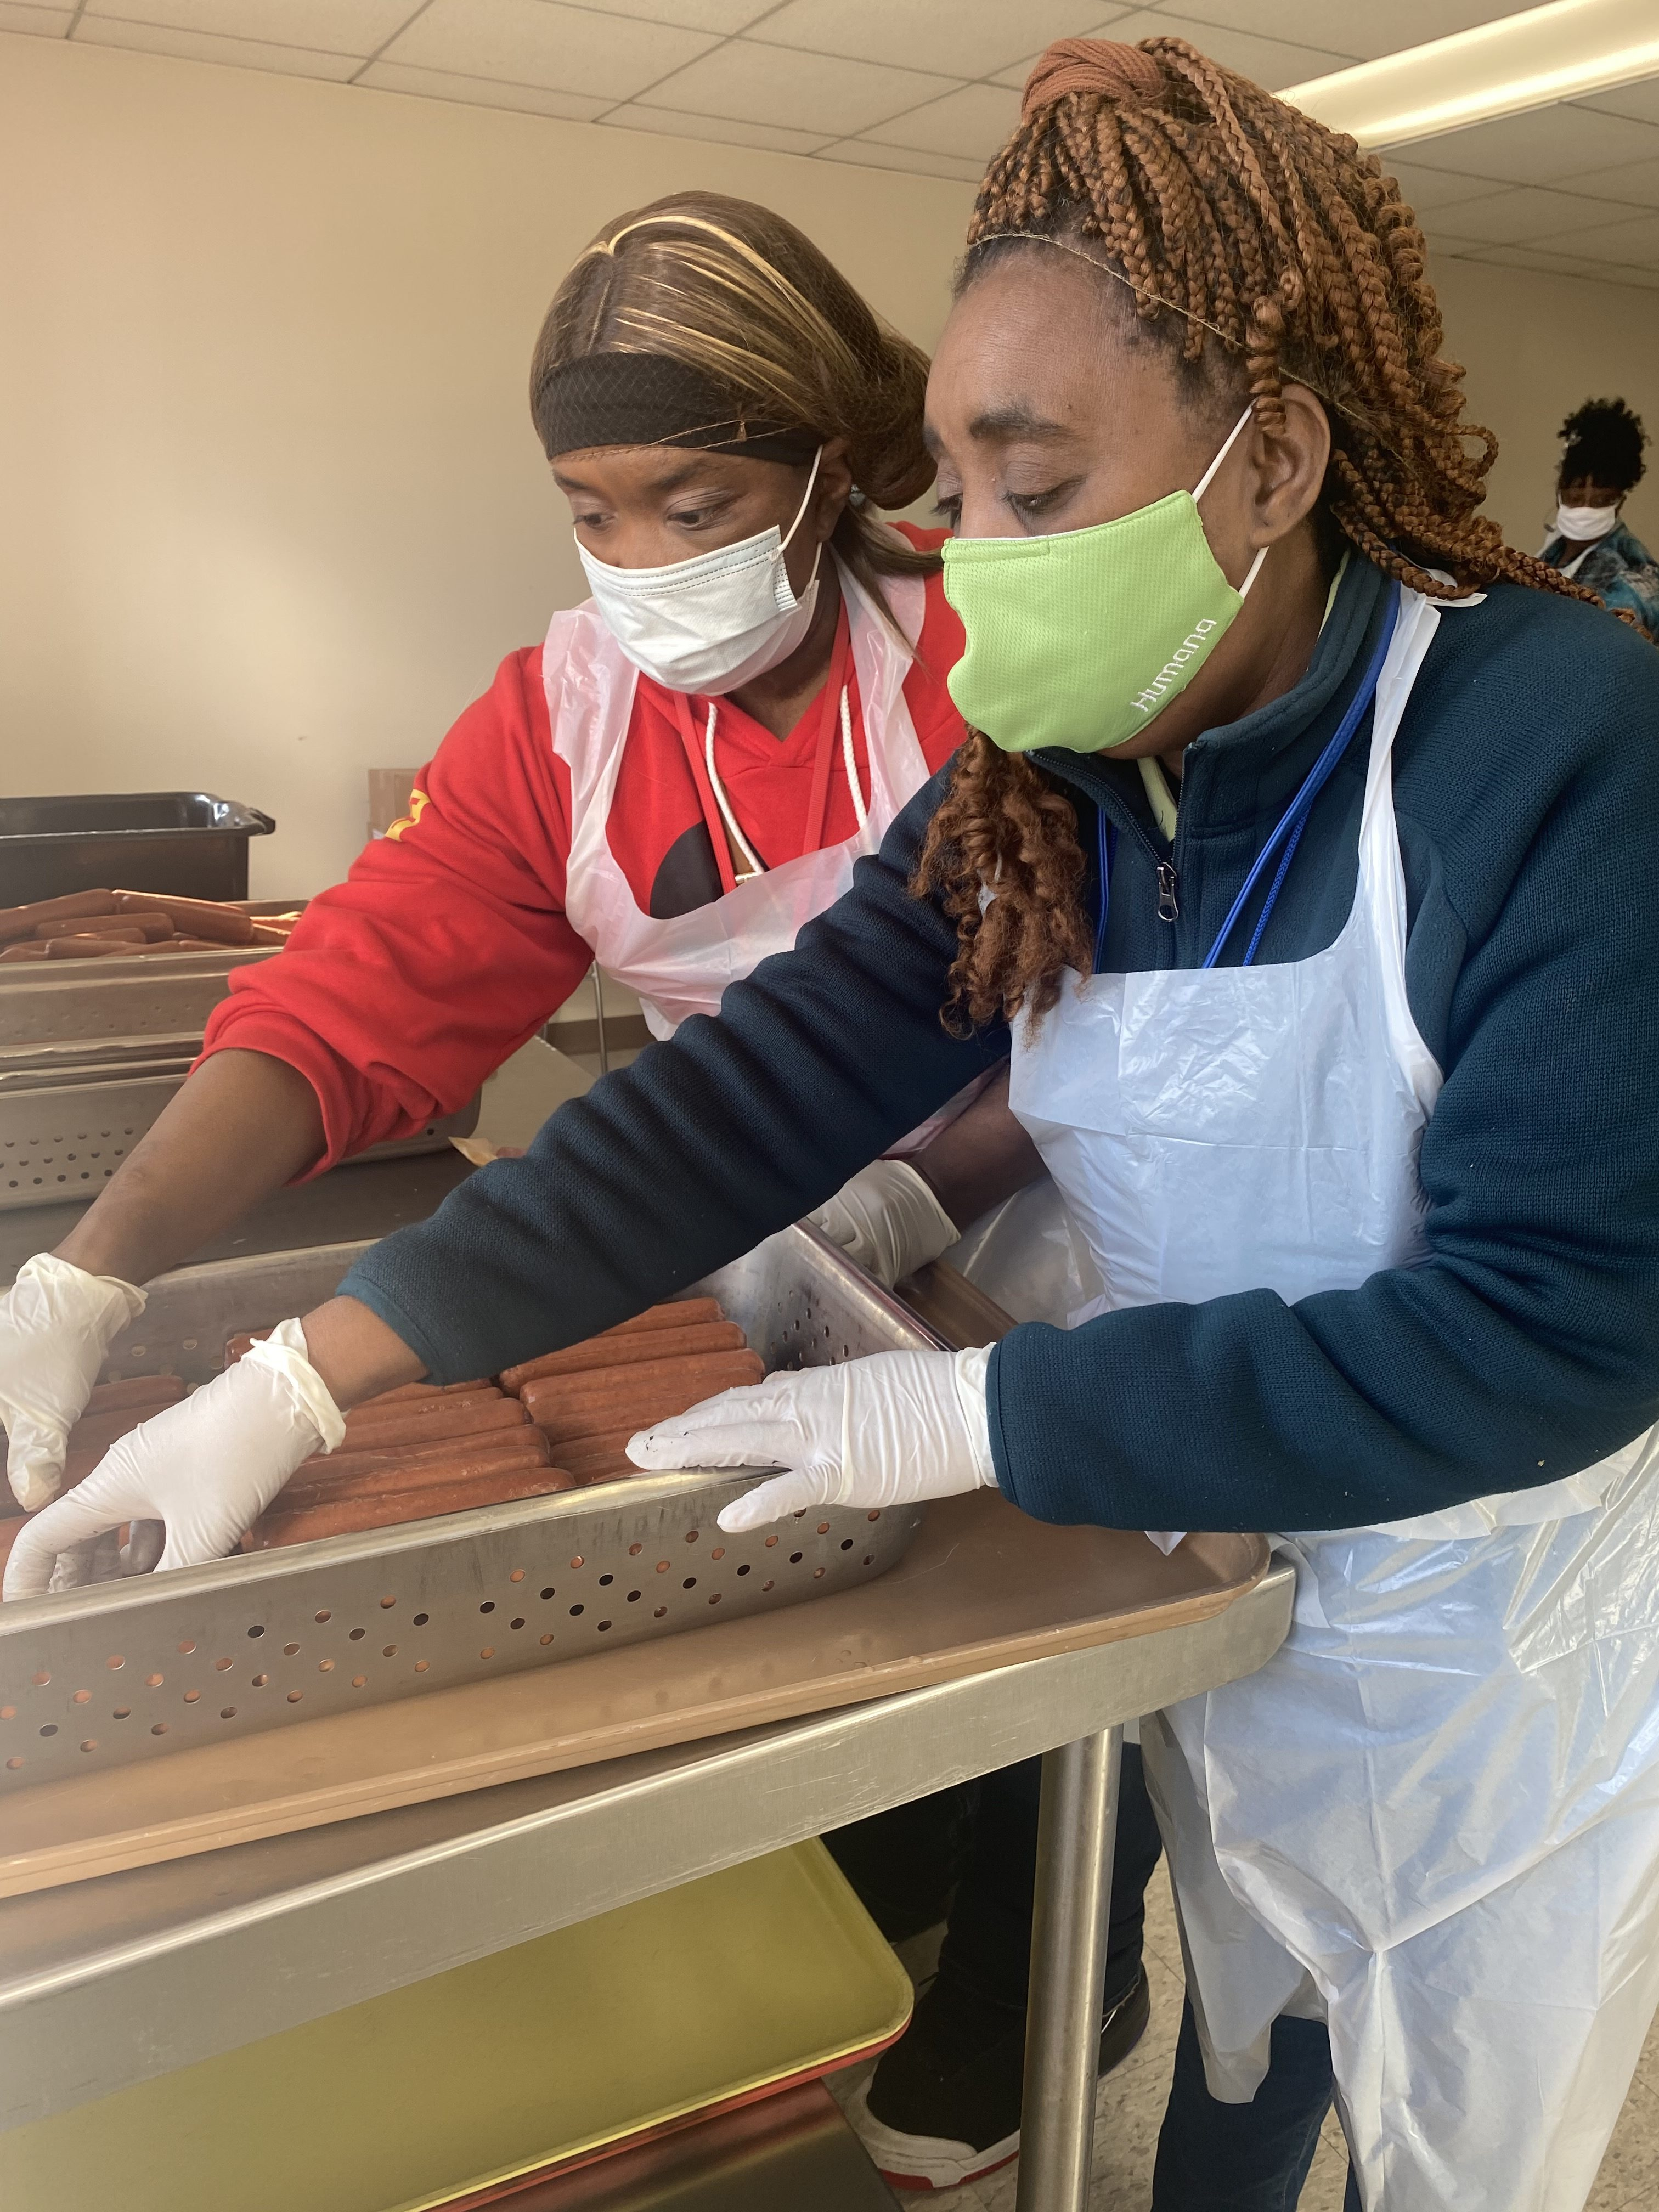 Metro Detroiters Living with Disabilities Step in to Help Those Most in Need During the Pandemic